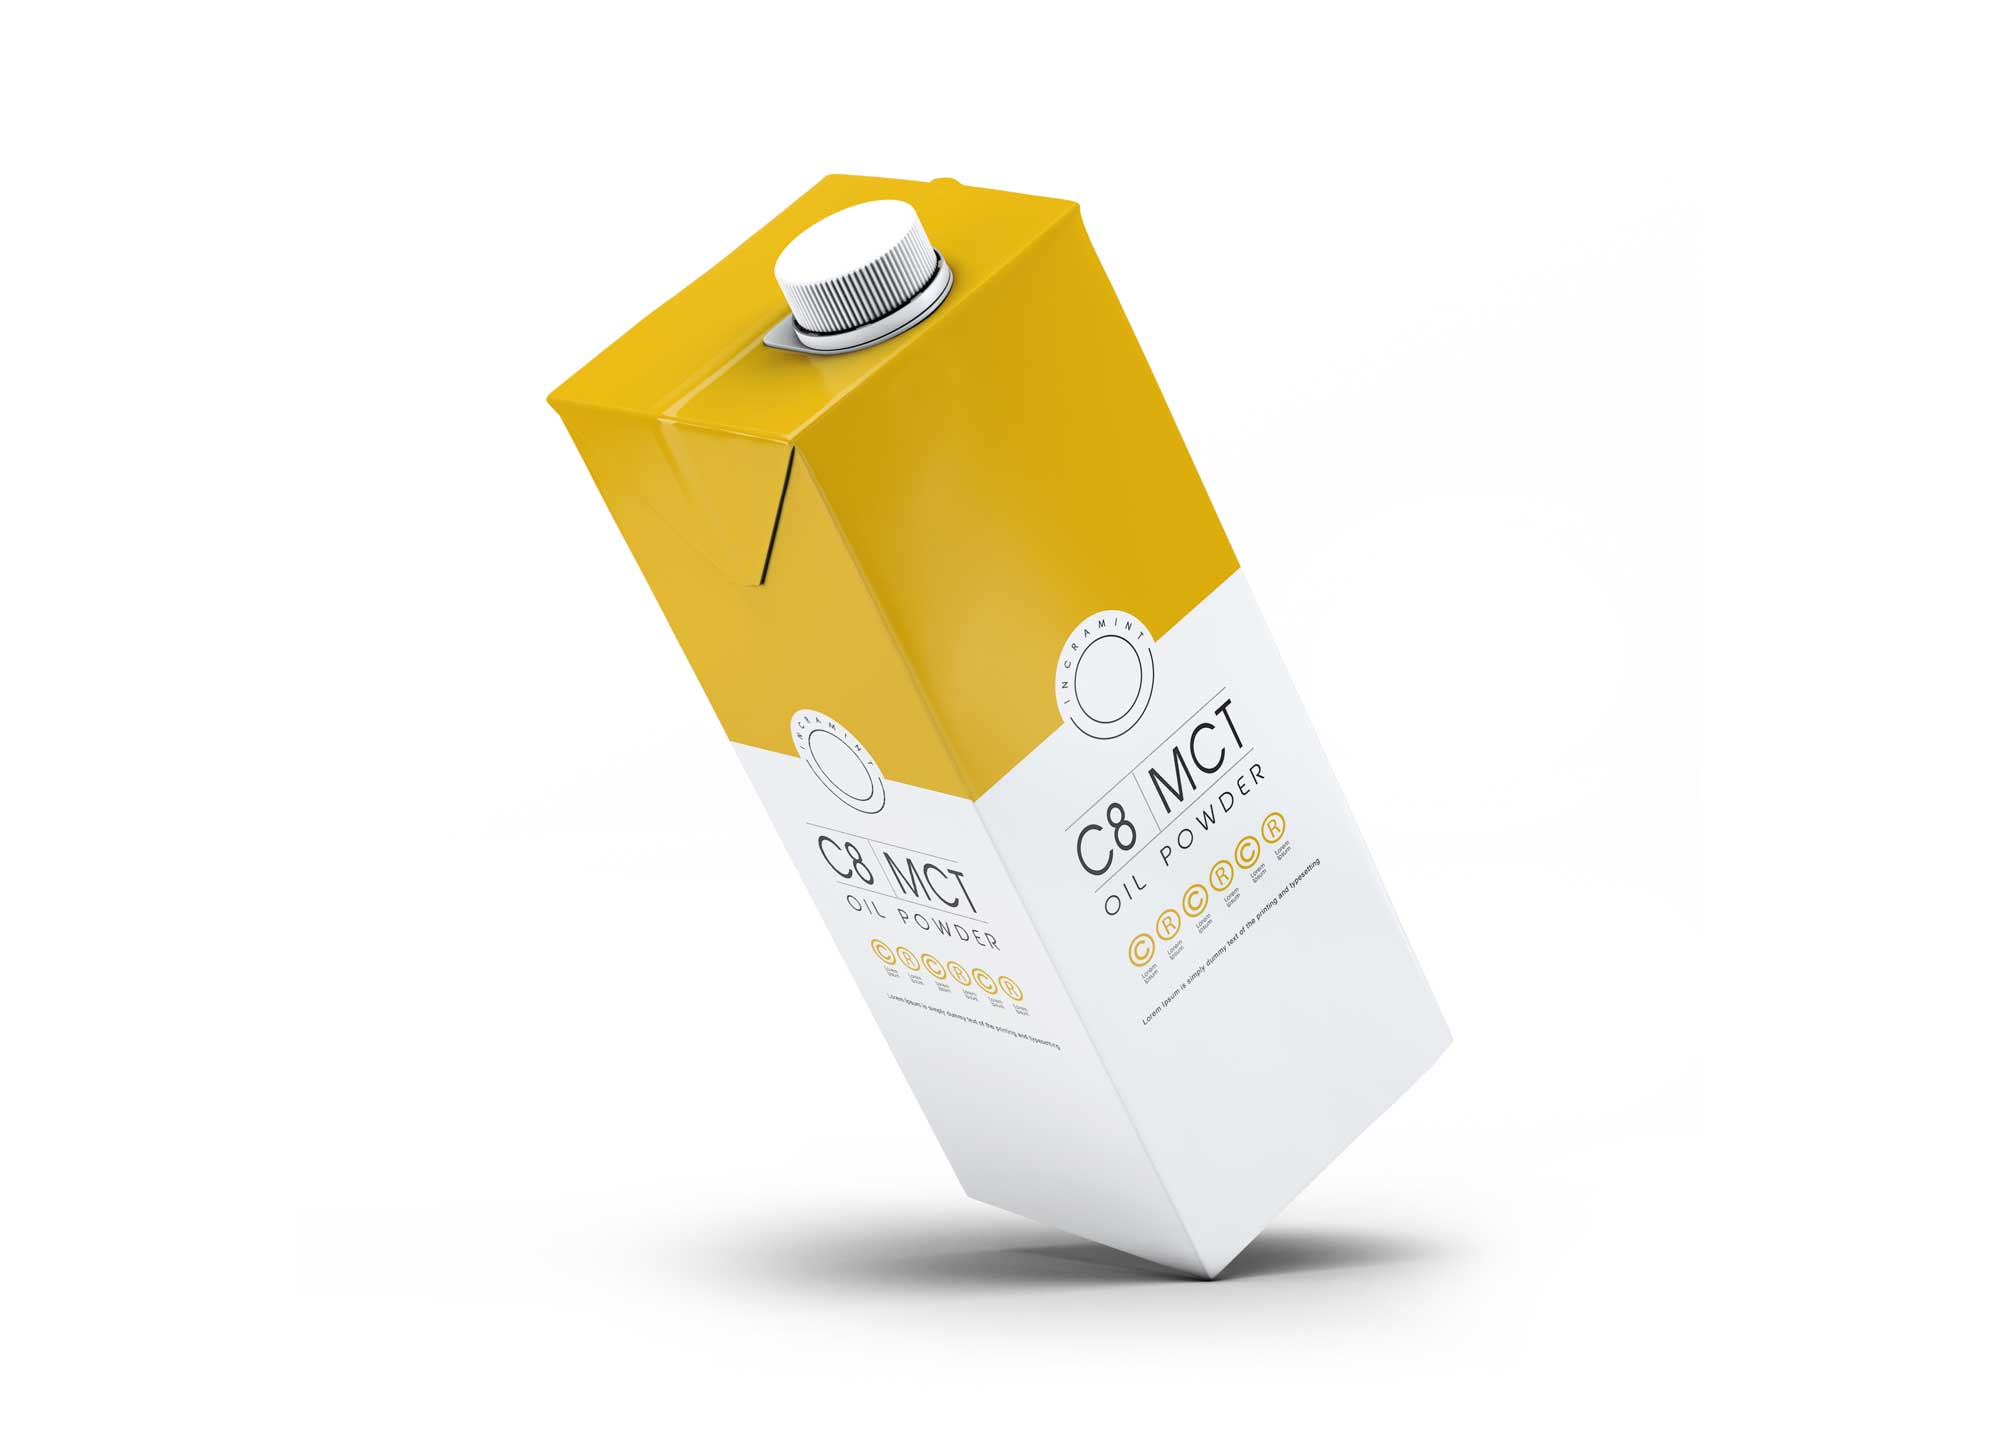 Juice Carton Packaging Mockup